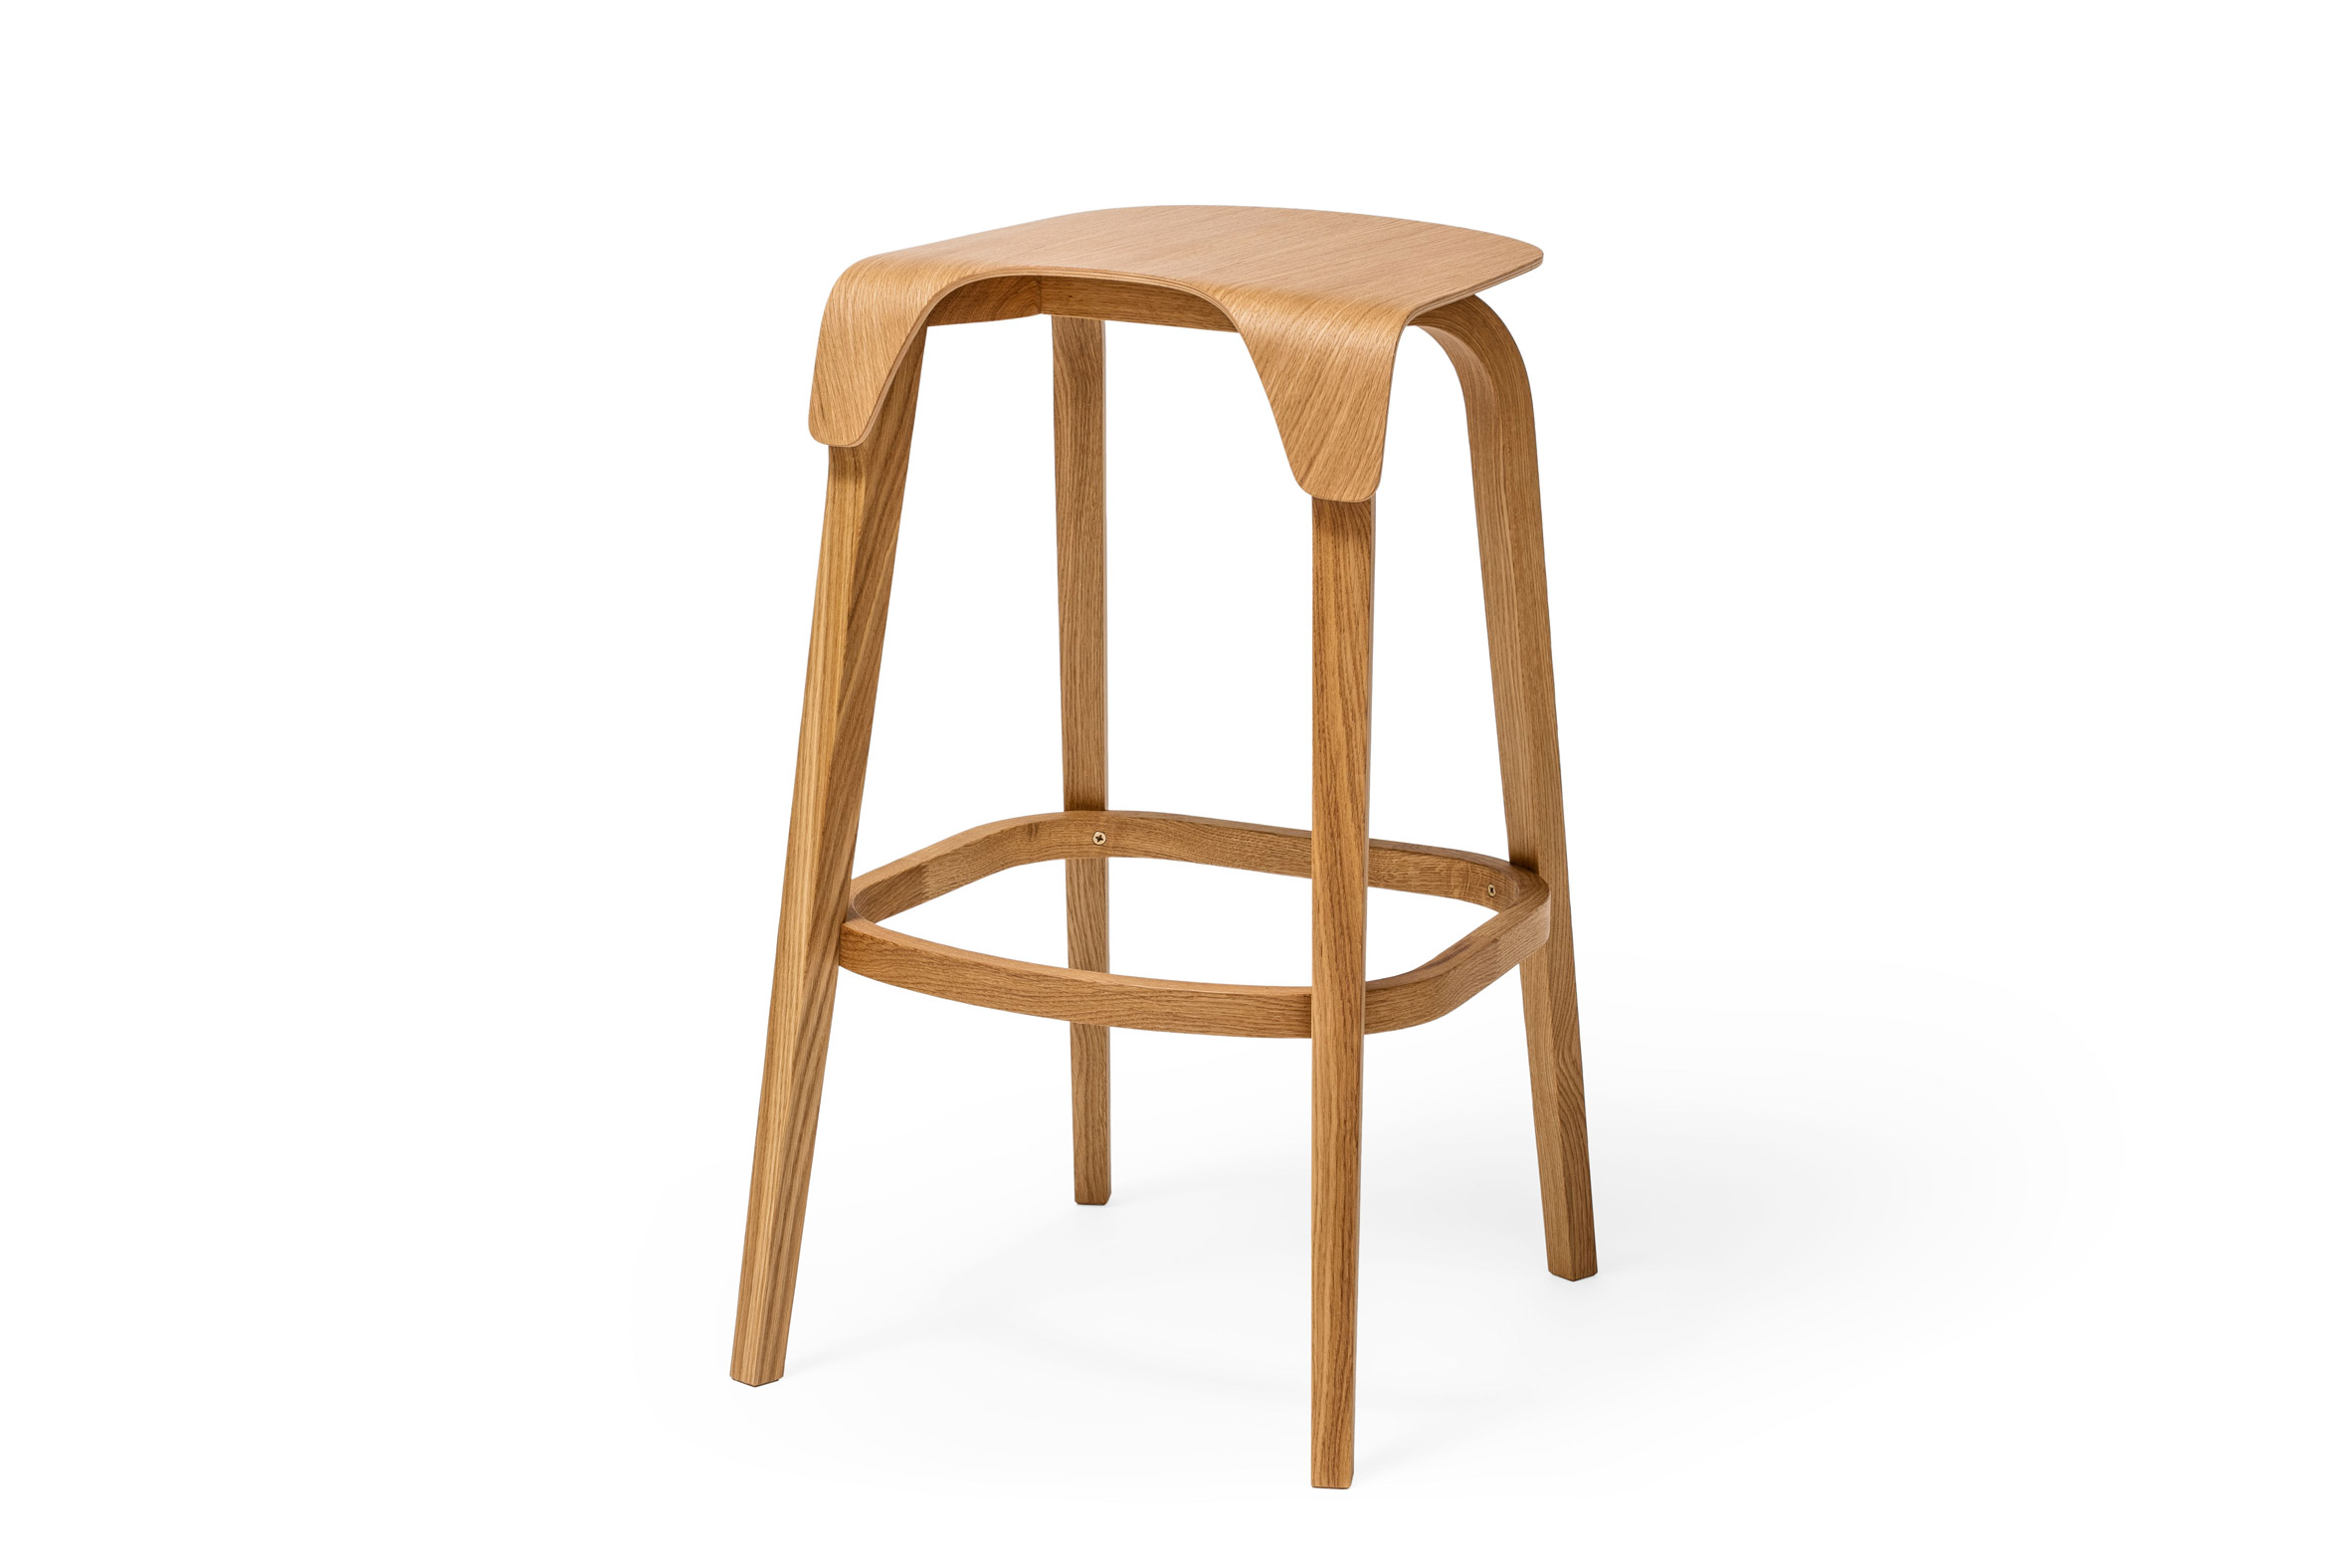 Incredible Eggs Designs Studio Unveils Steam Bent Wood Furniture Ocoug Best Dining Table And Chair Ideas Images Ocougorg